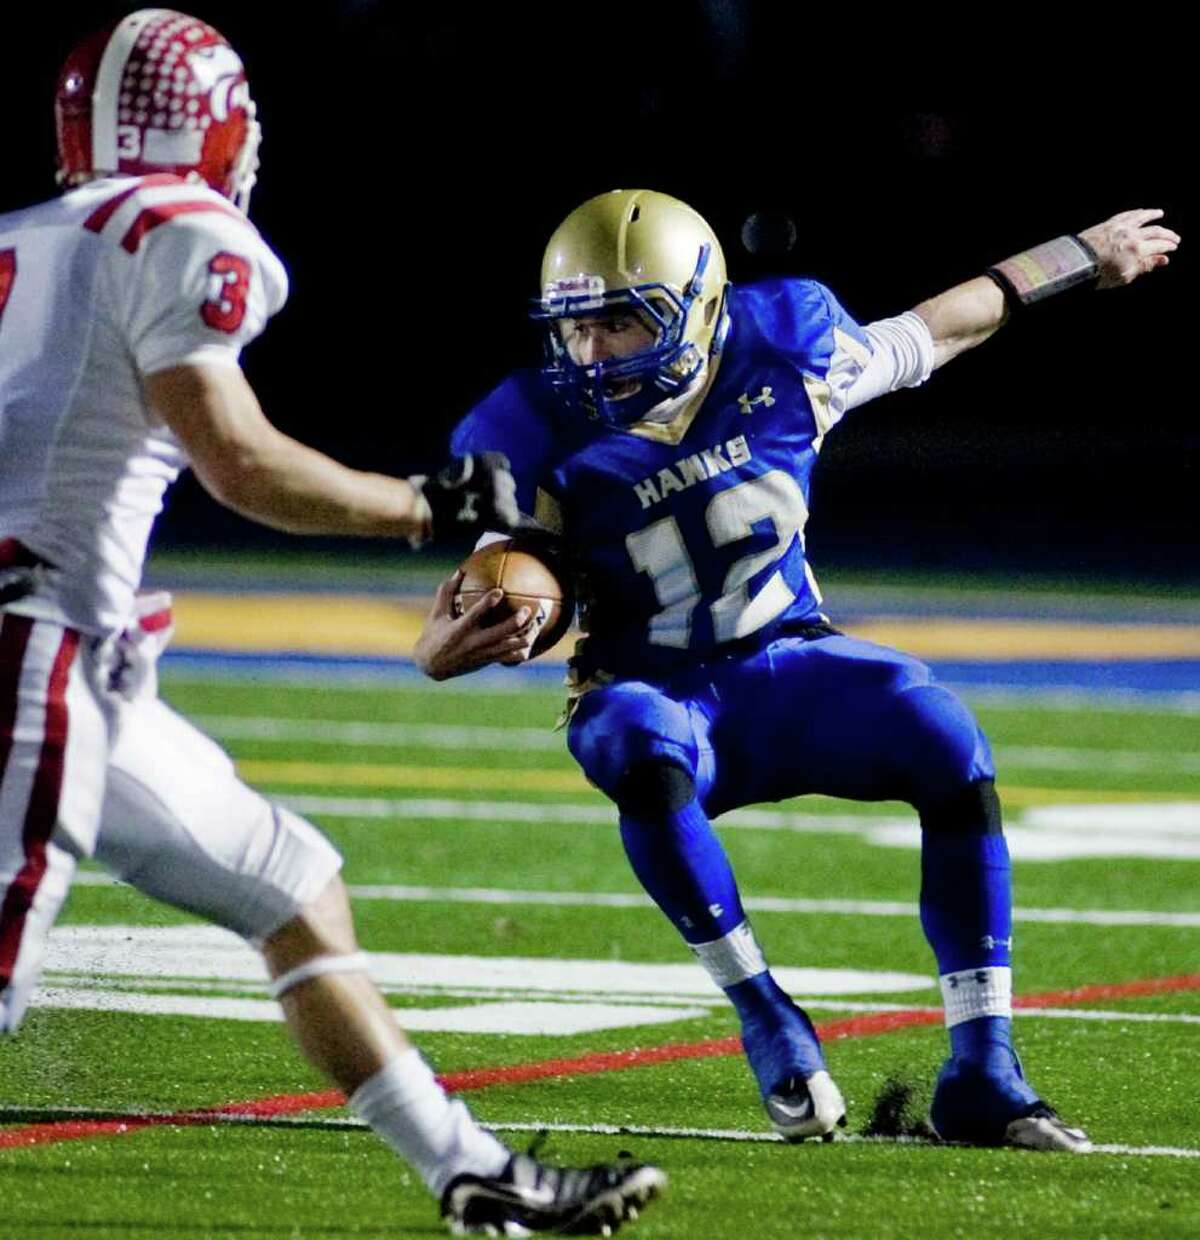 Newtown's Dan Hebert tries to get away during the SWC championship football game against Masuk at Newtown. Wednesday, Nov. 24, 2010